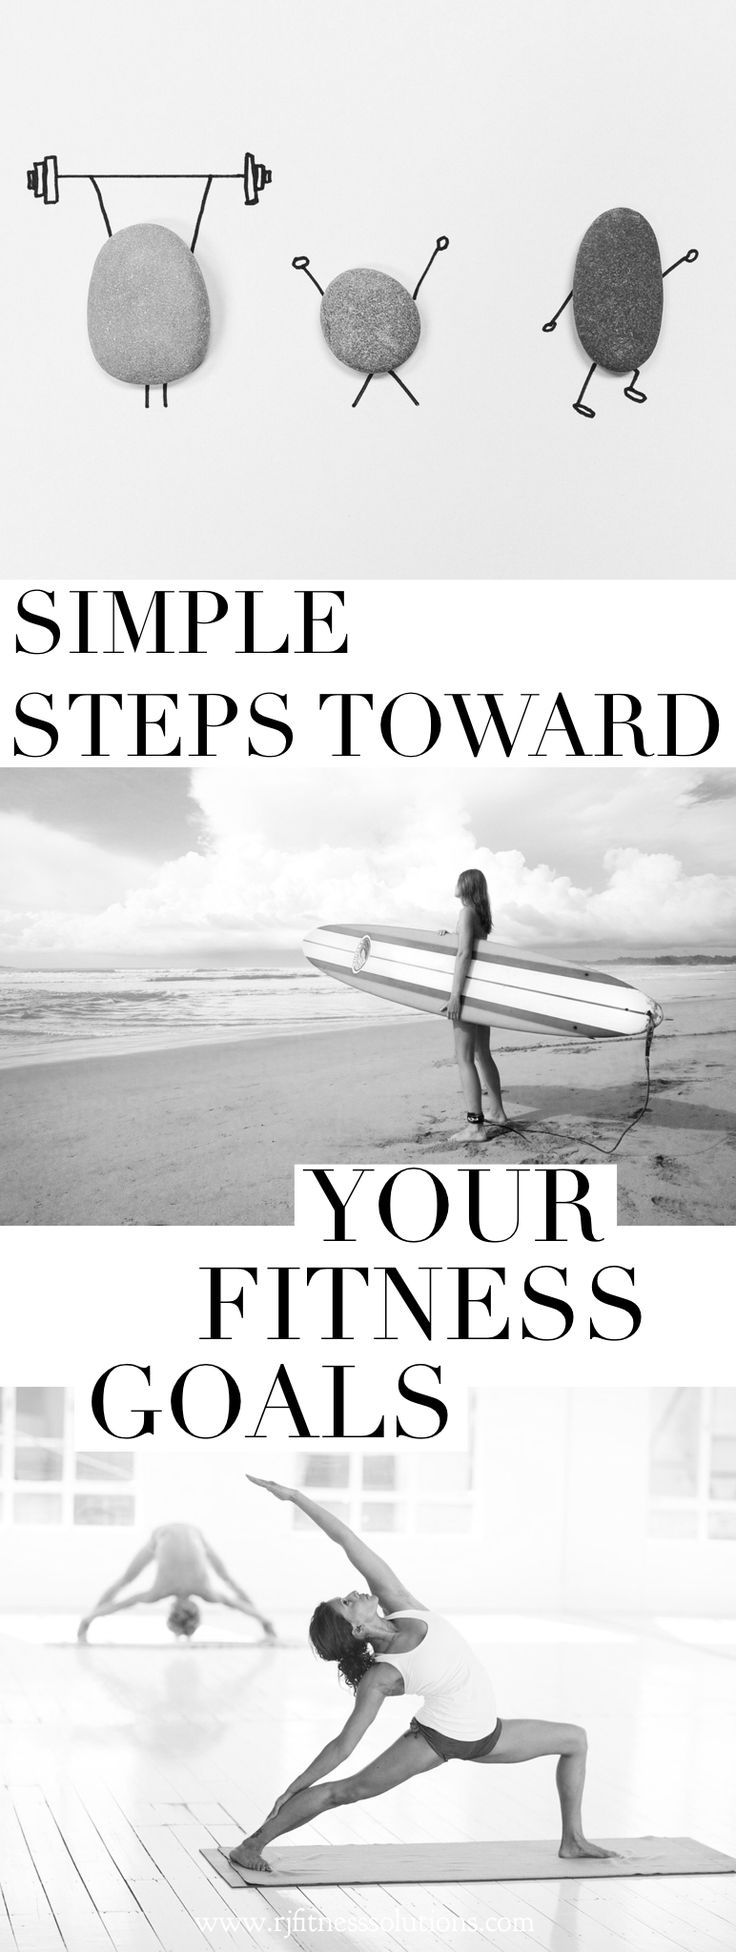 Simple Steps Toward Your Fitness Goals